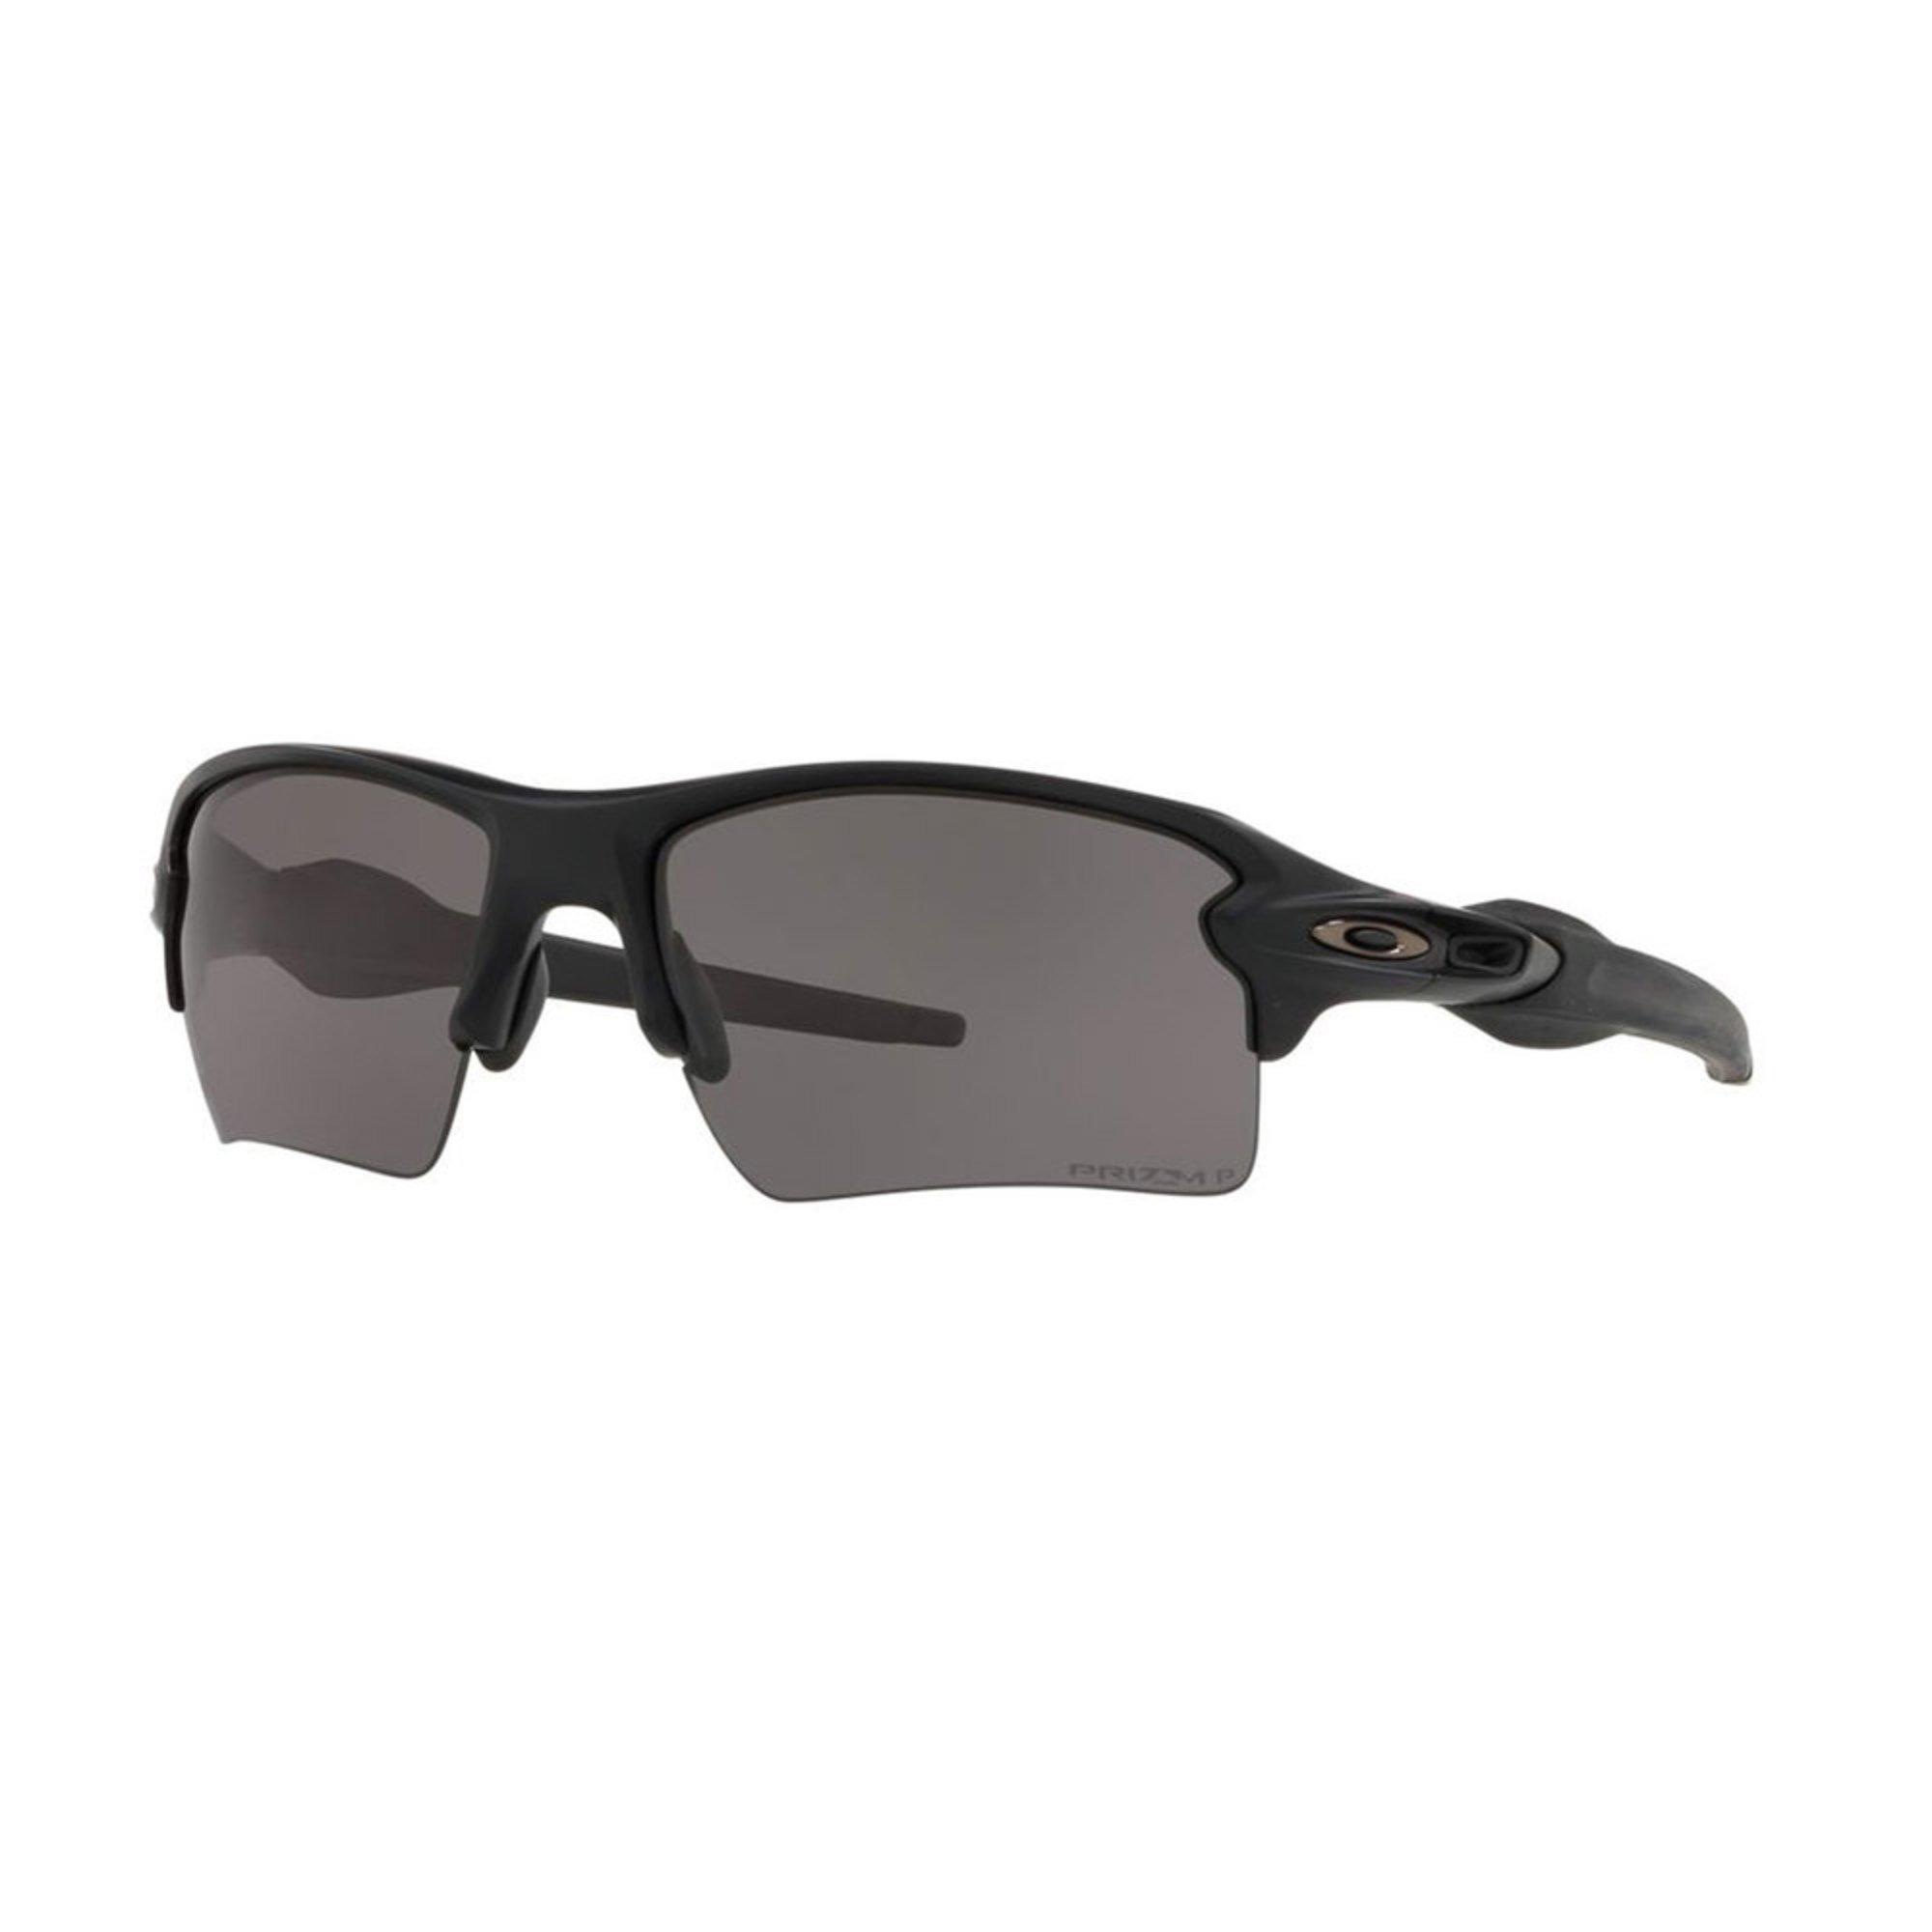 047ff09666 Oakley. Oakley Men s Polarized SI Flak PRIZM Sunglasses